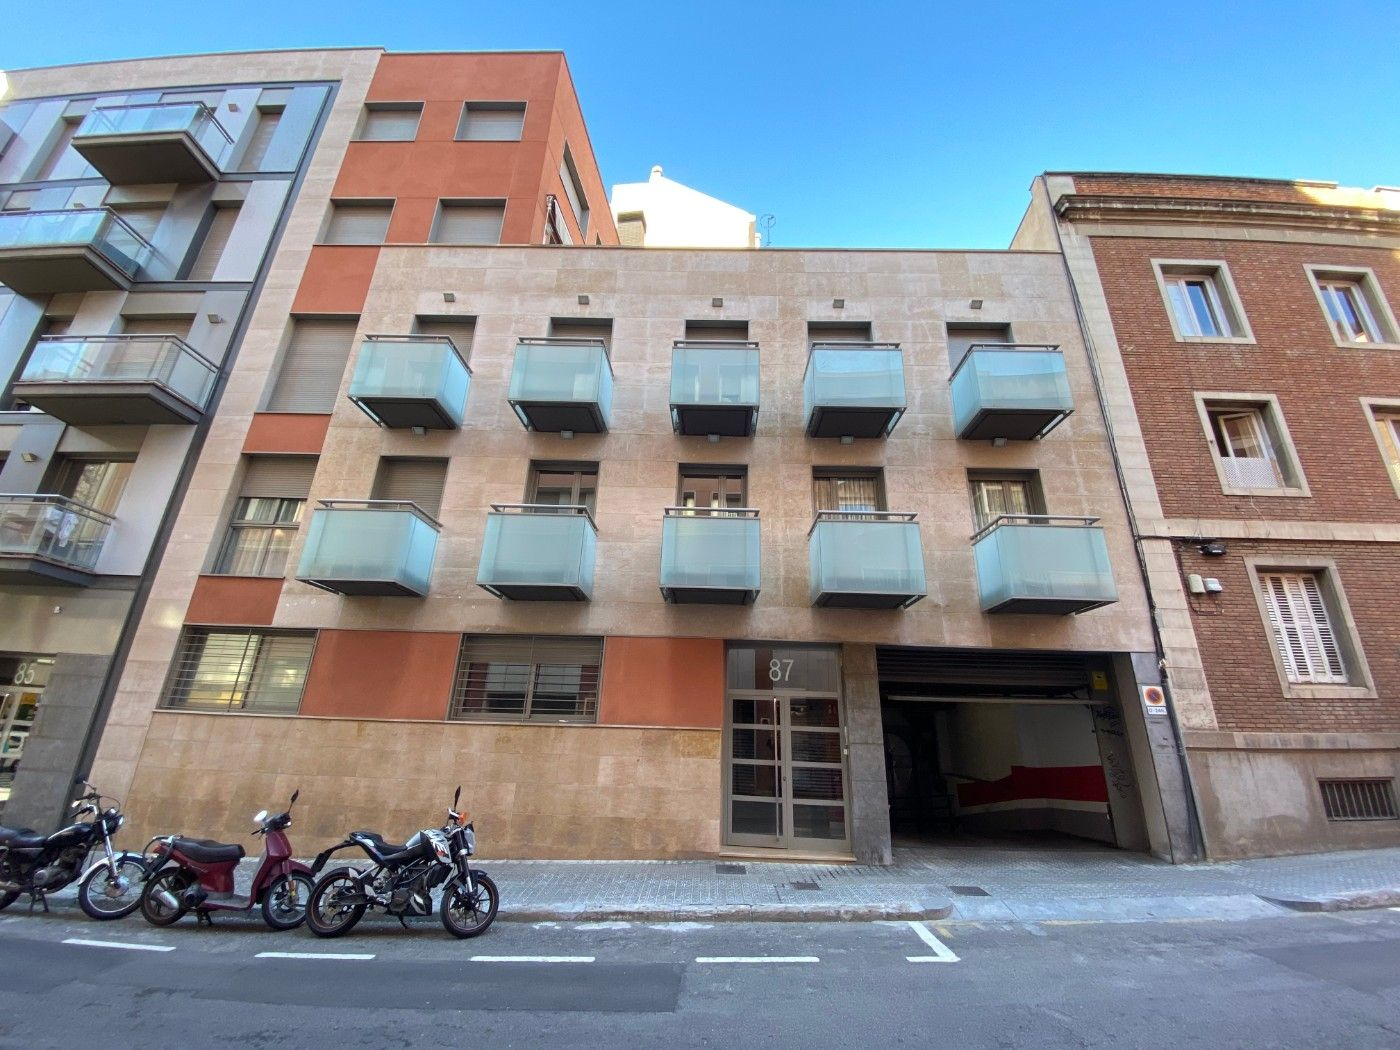 Parking coche en Carrer sant lluis, 87. Pk coche mediano